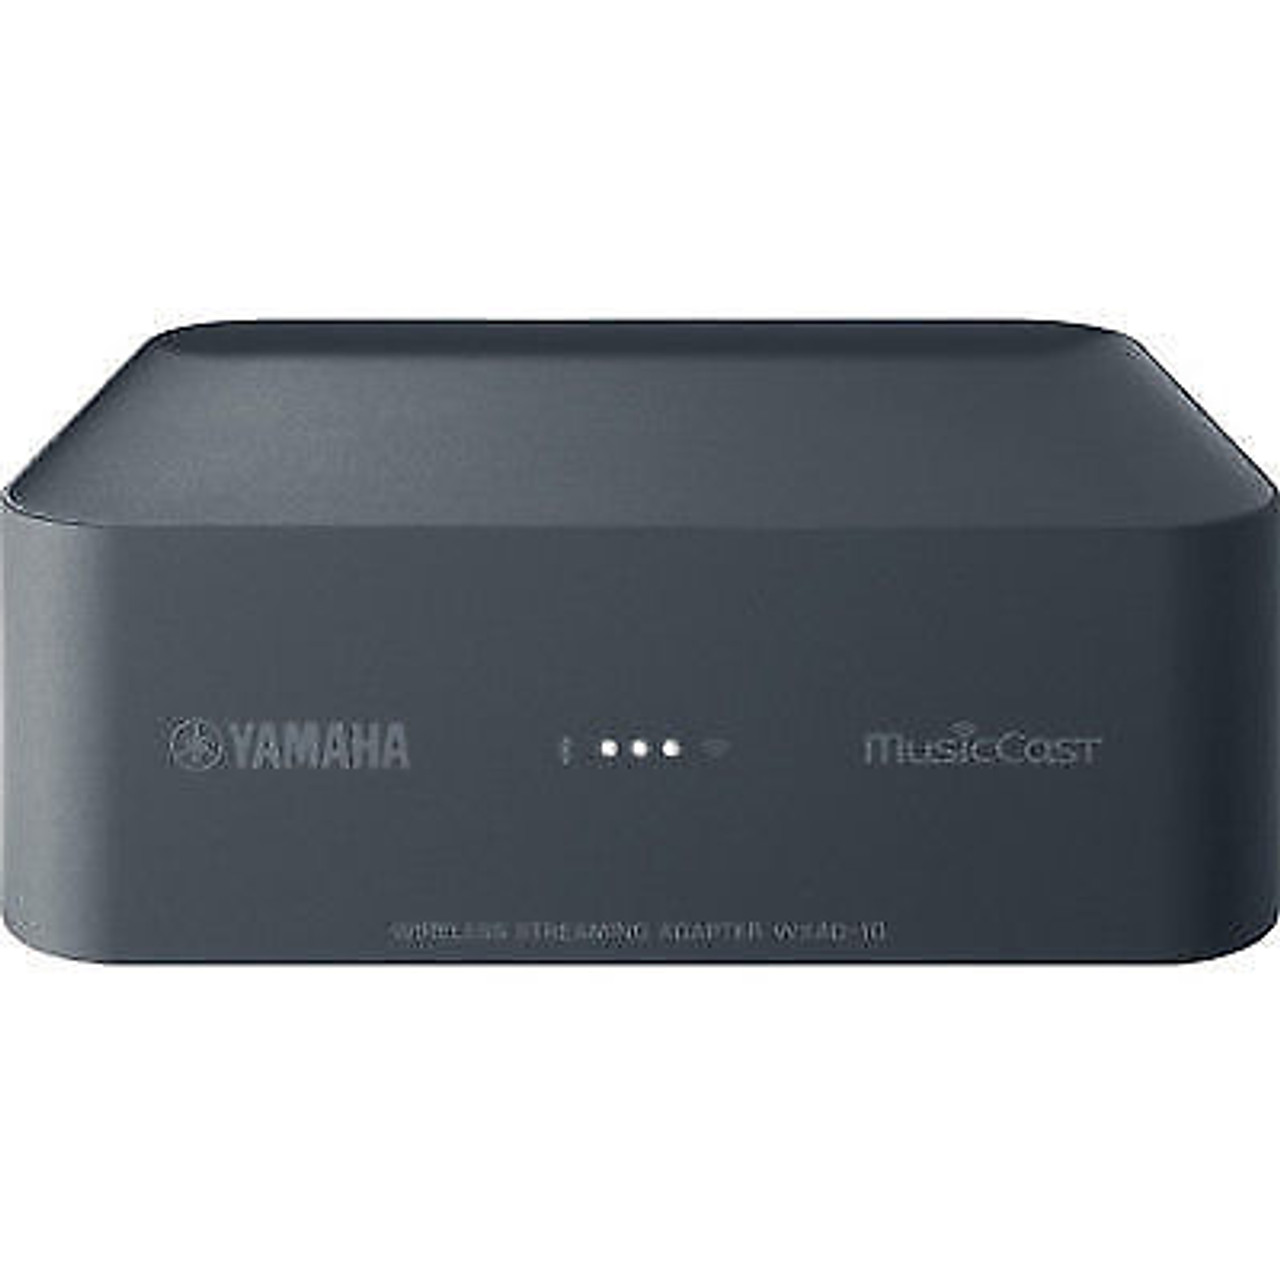 Yamaha WXAD-10 MusicCast Wireless Streaming Adaptor with Bluetooth® and Airplay® - HURRY LAST 4!